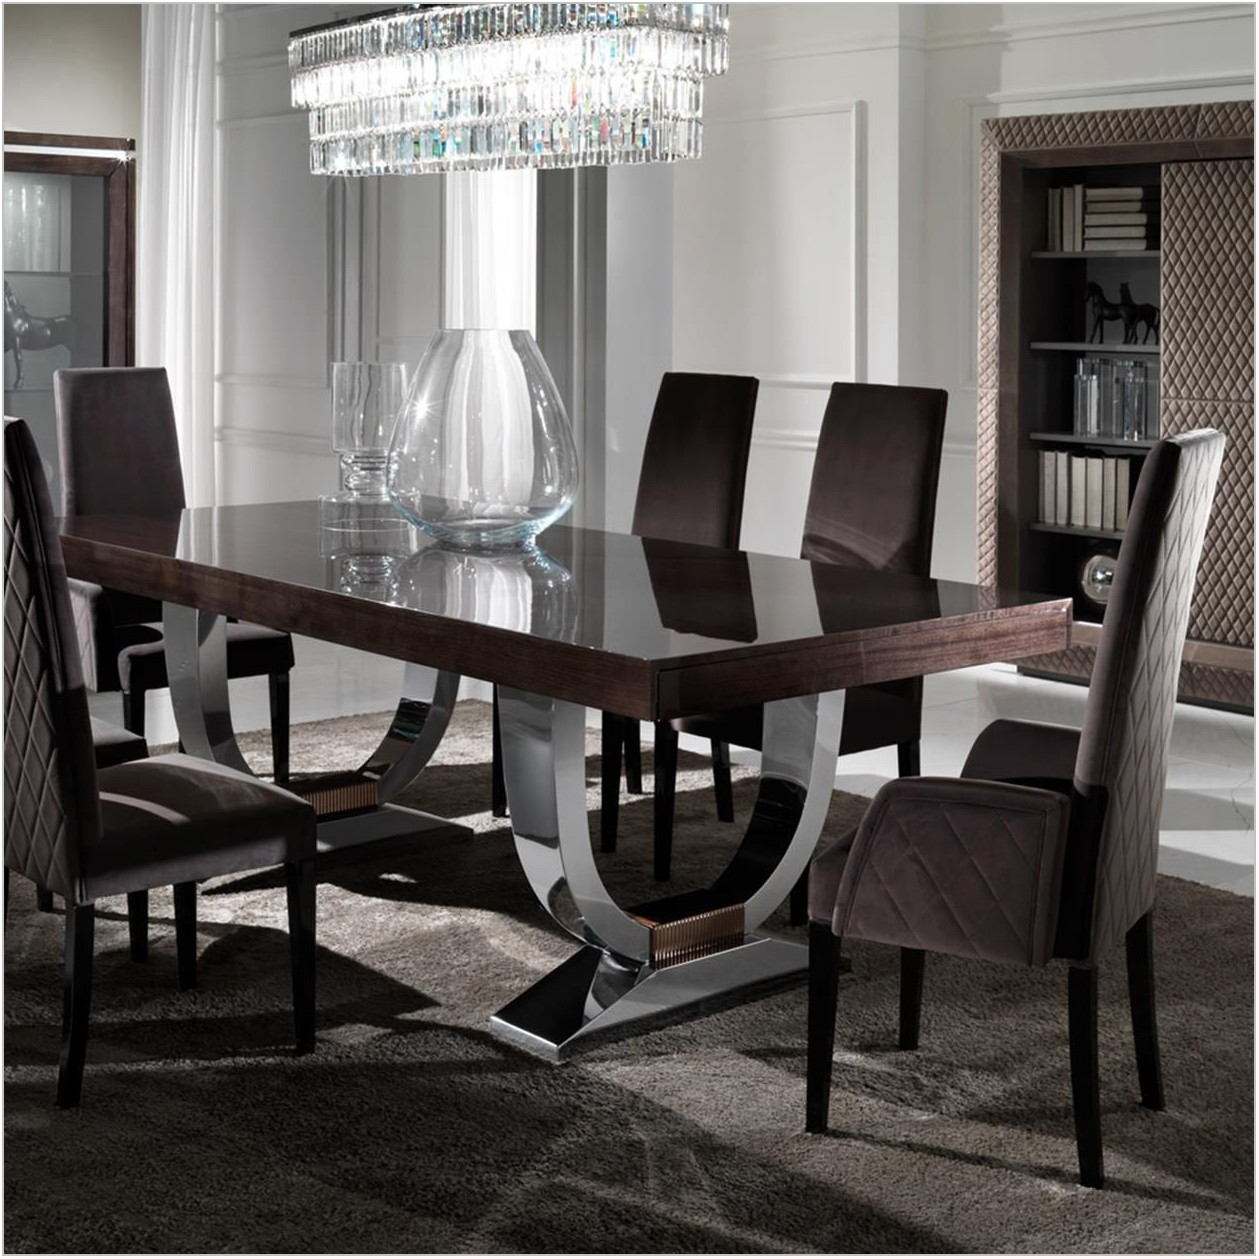 Italian Dining Room Sets Modern